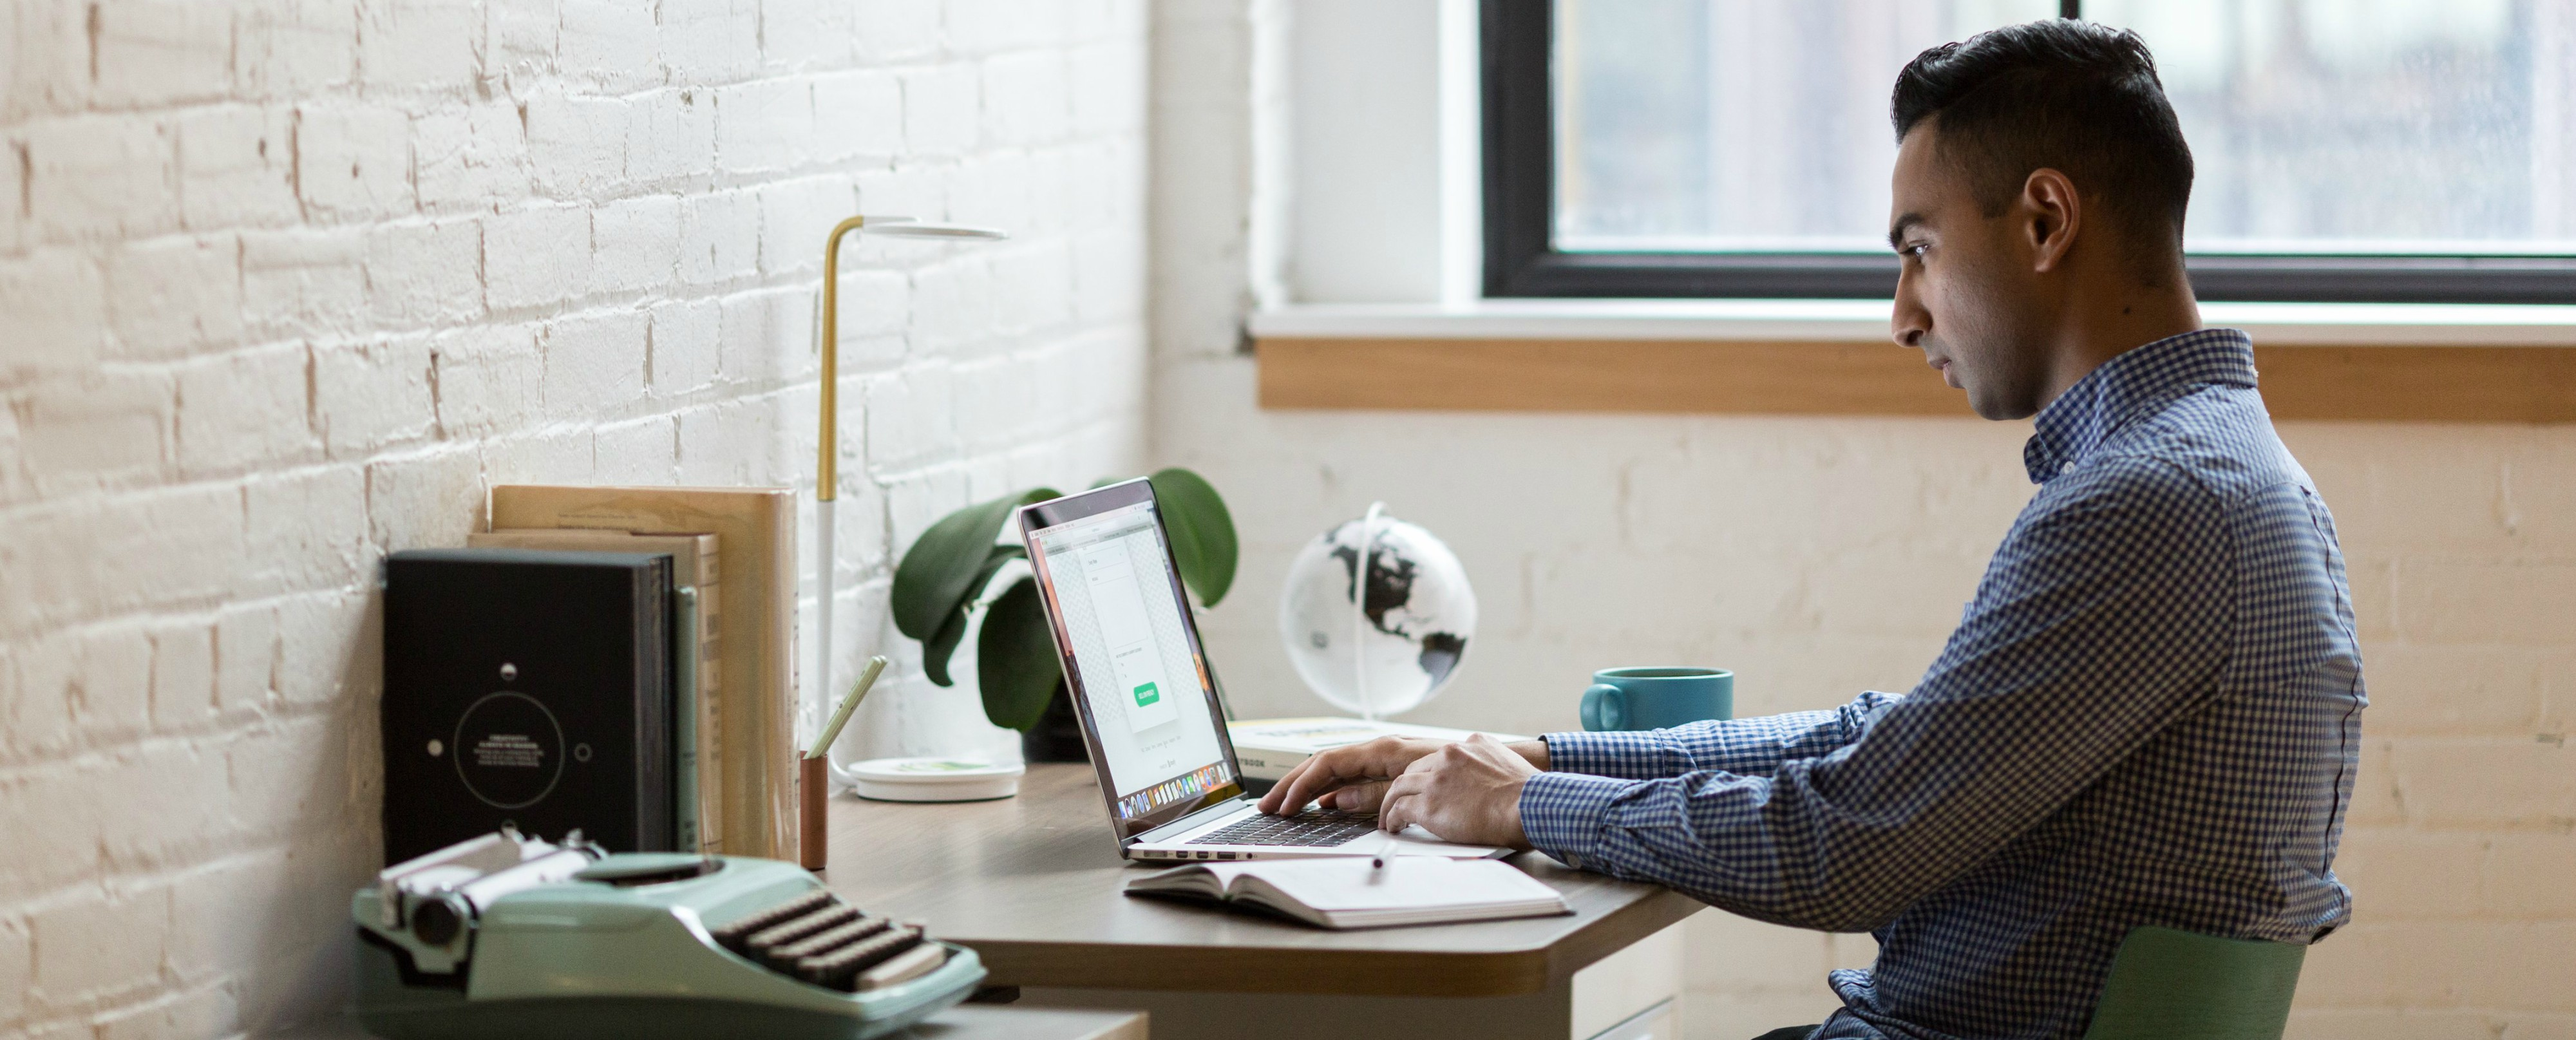 young-man-working-at-desk.jpg